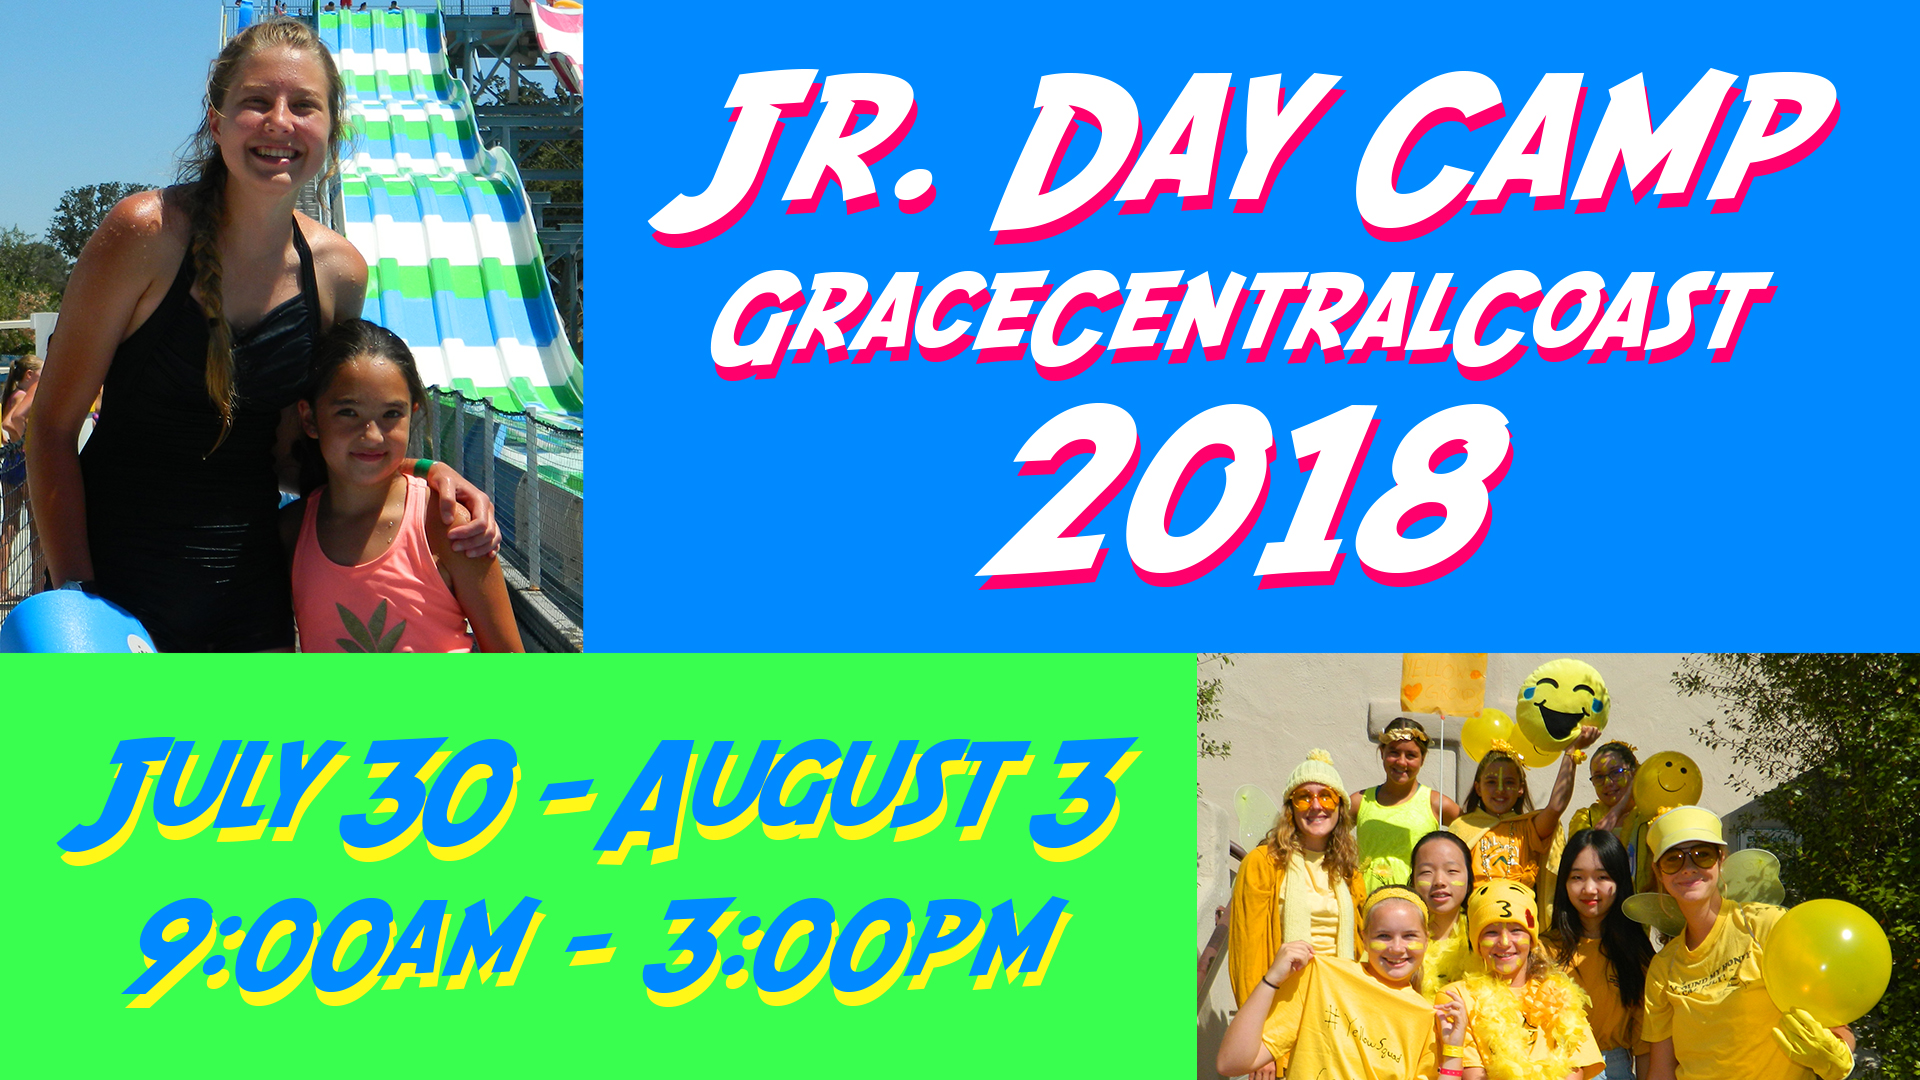 Jrdaycamp2018 pco registration